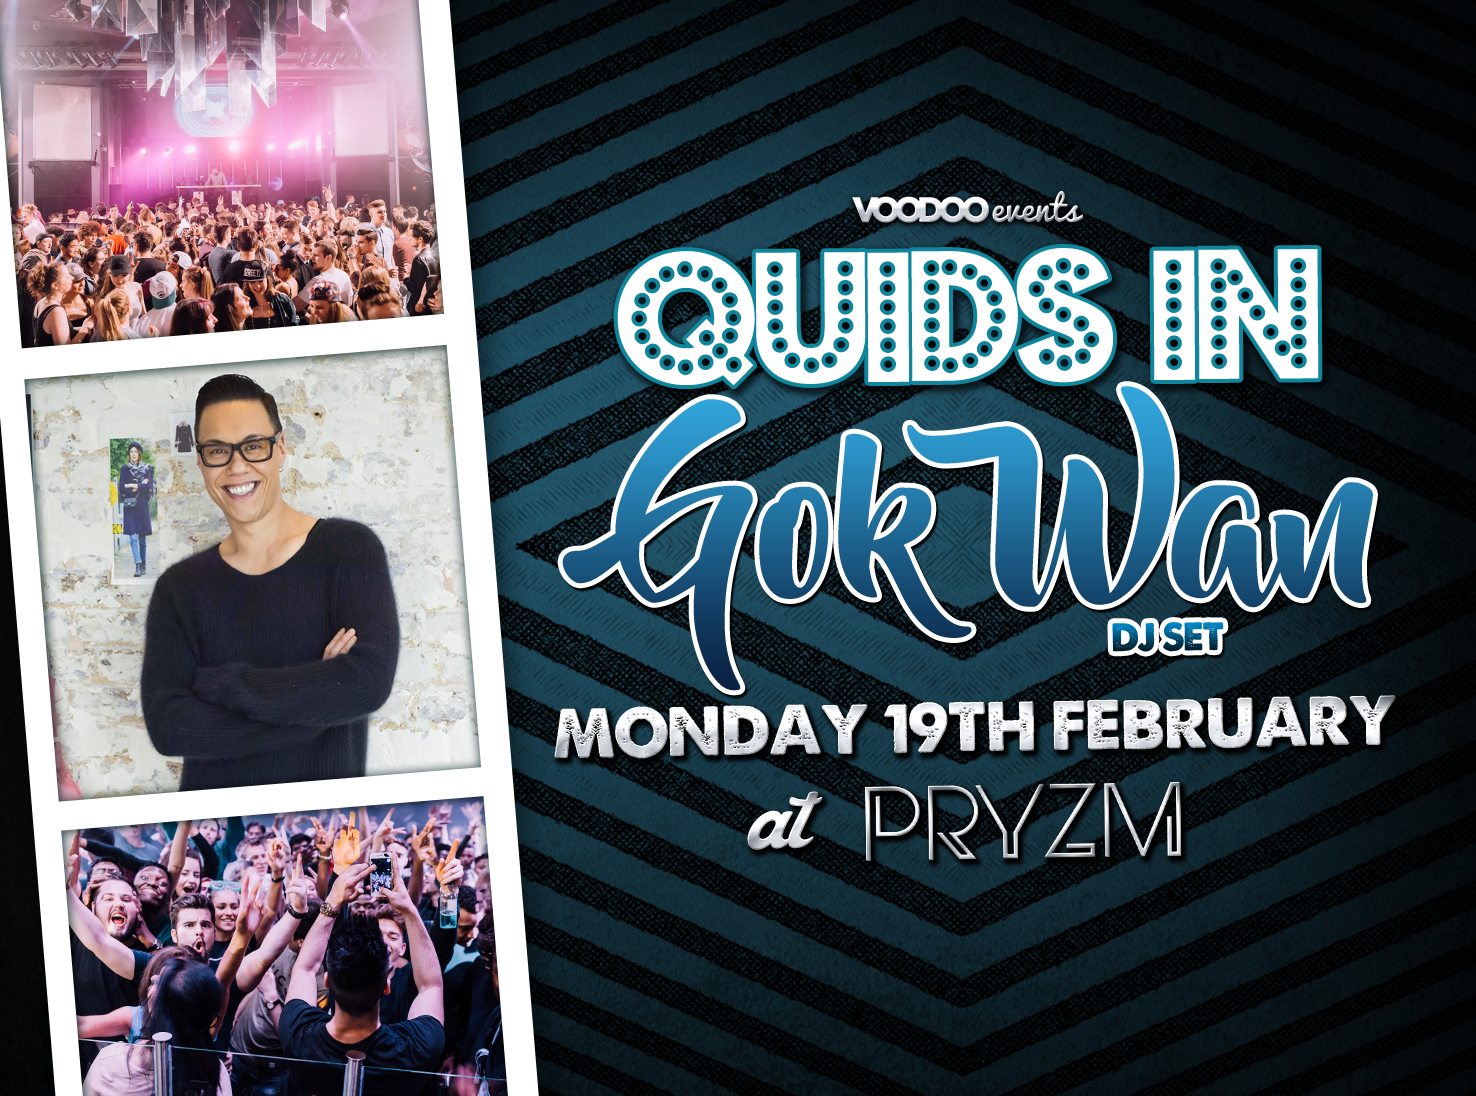 Quids In hosted by Gok Wan